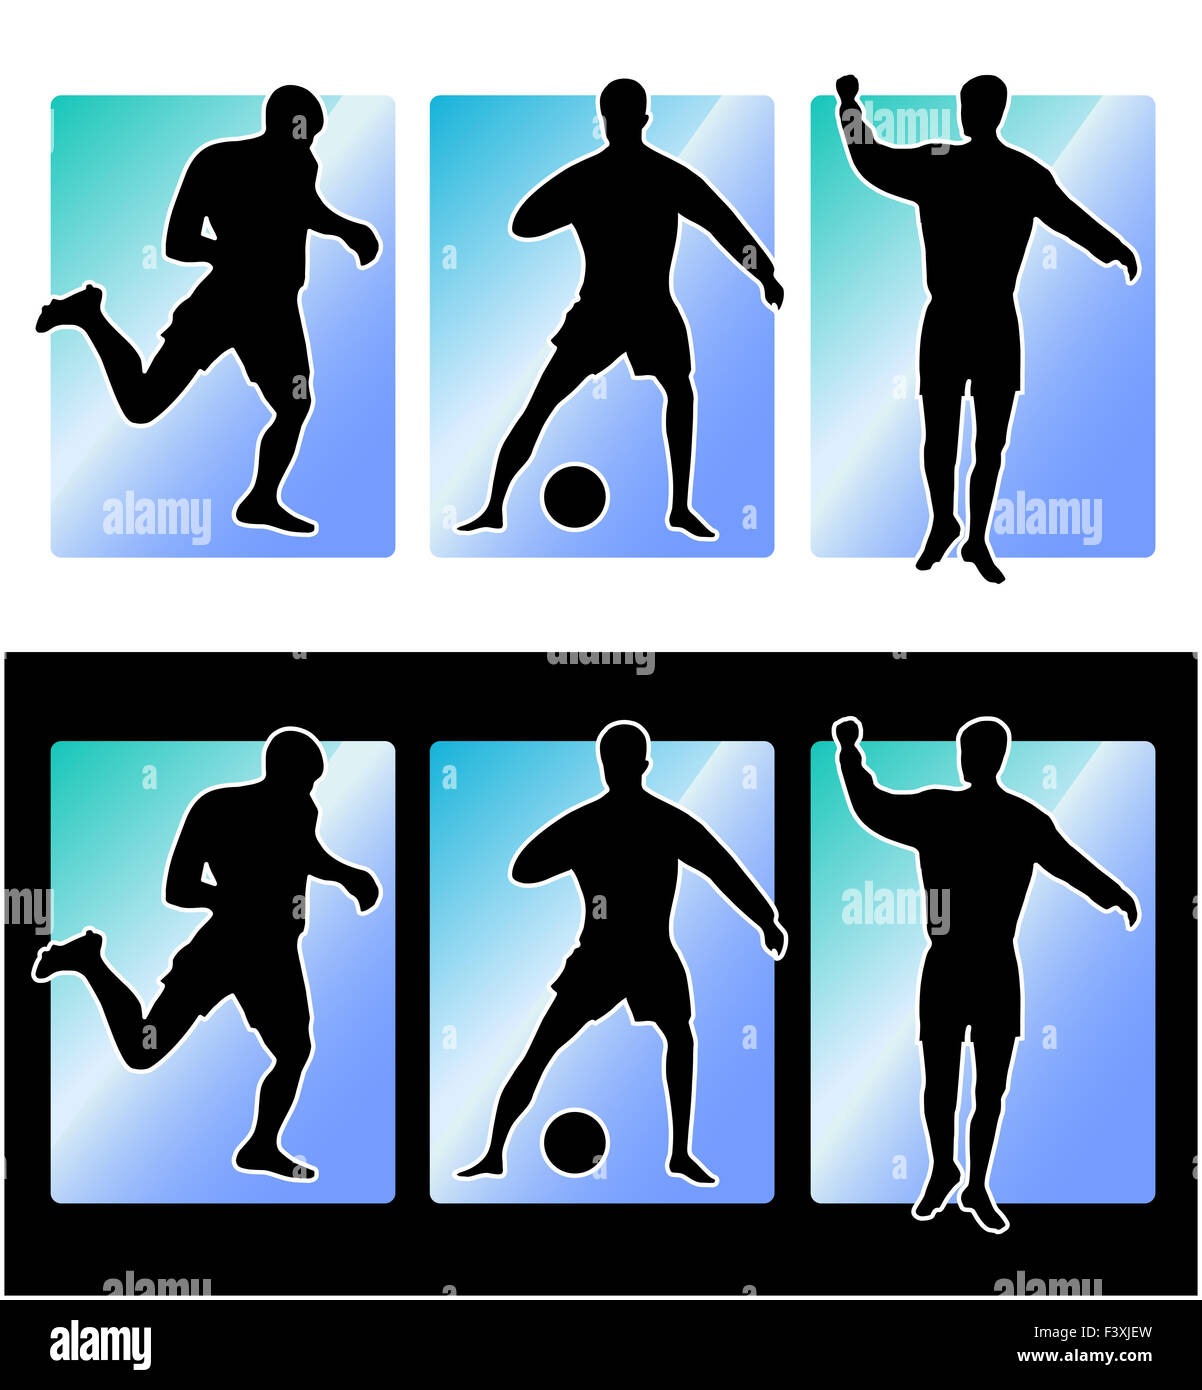 Soccer football players - Stock Image